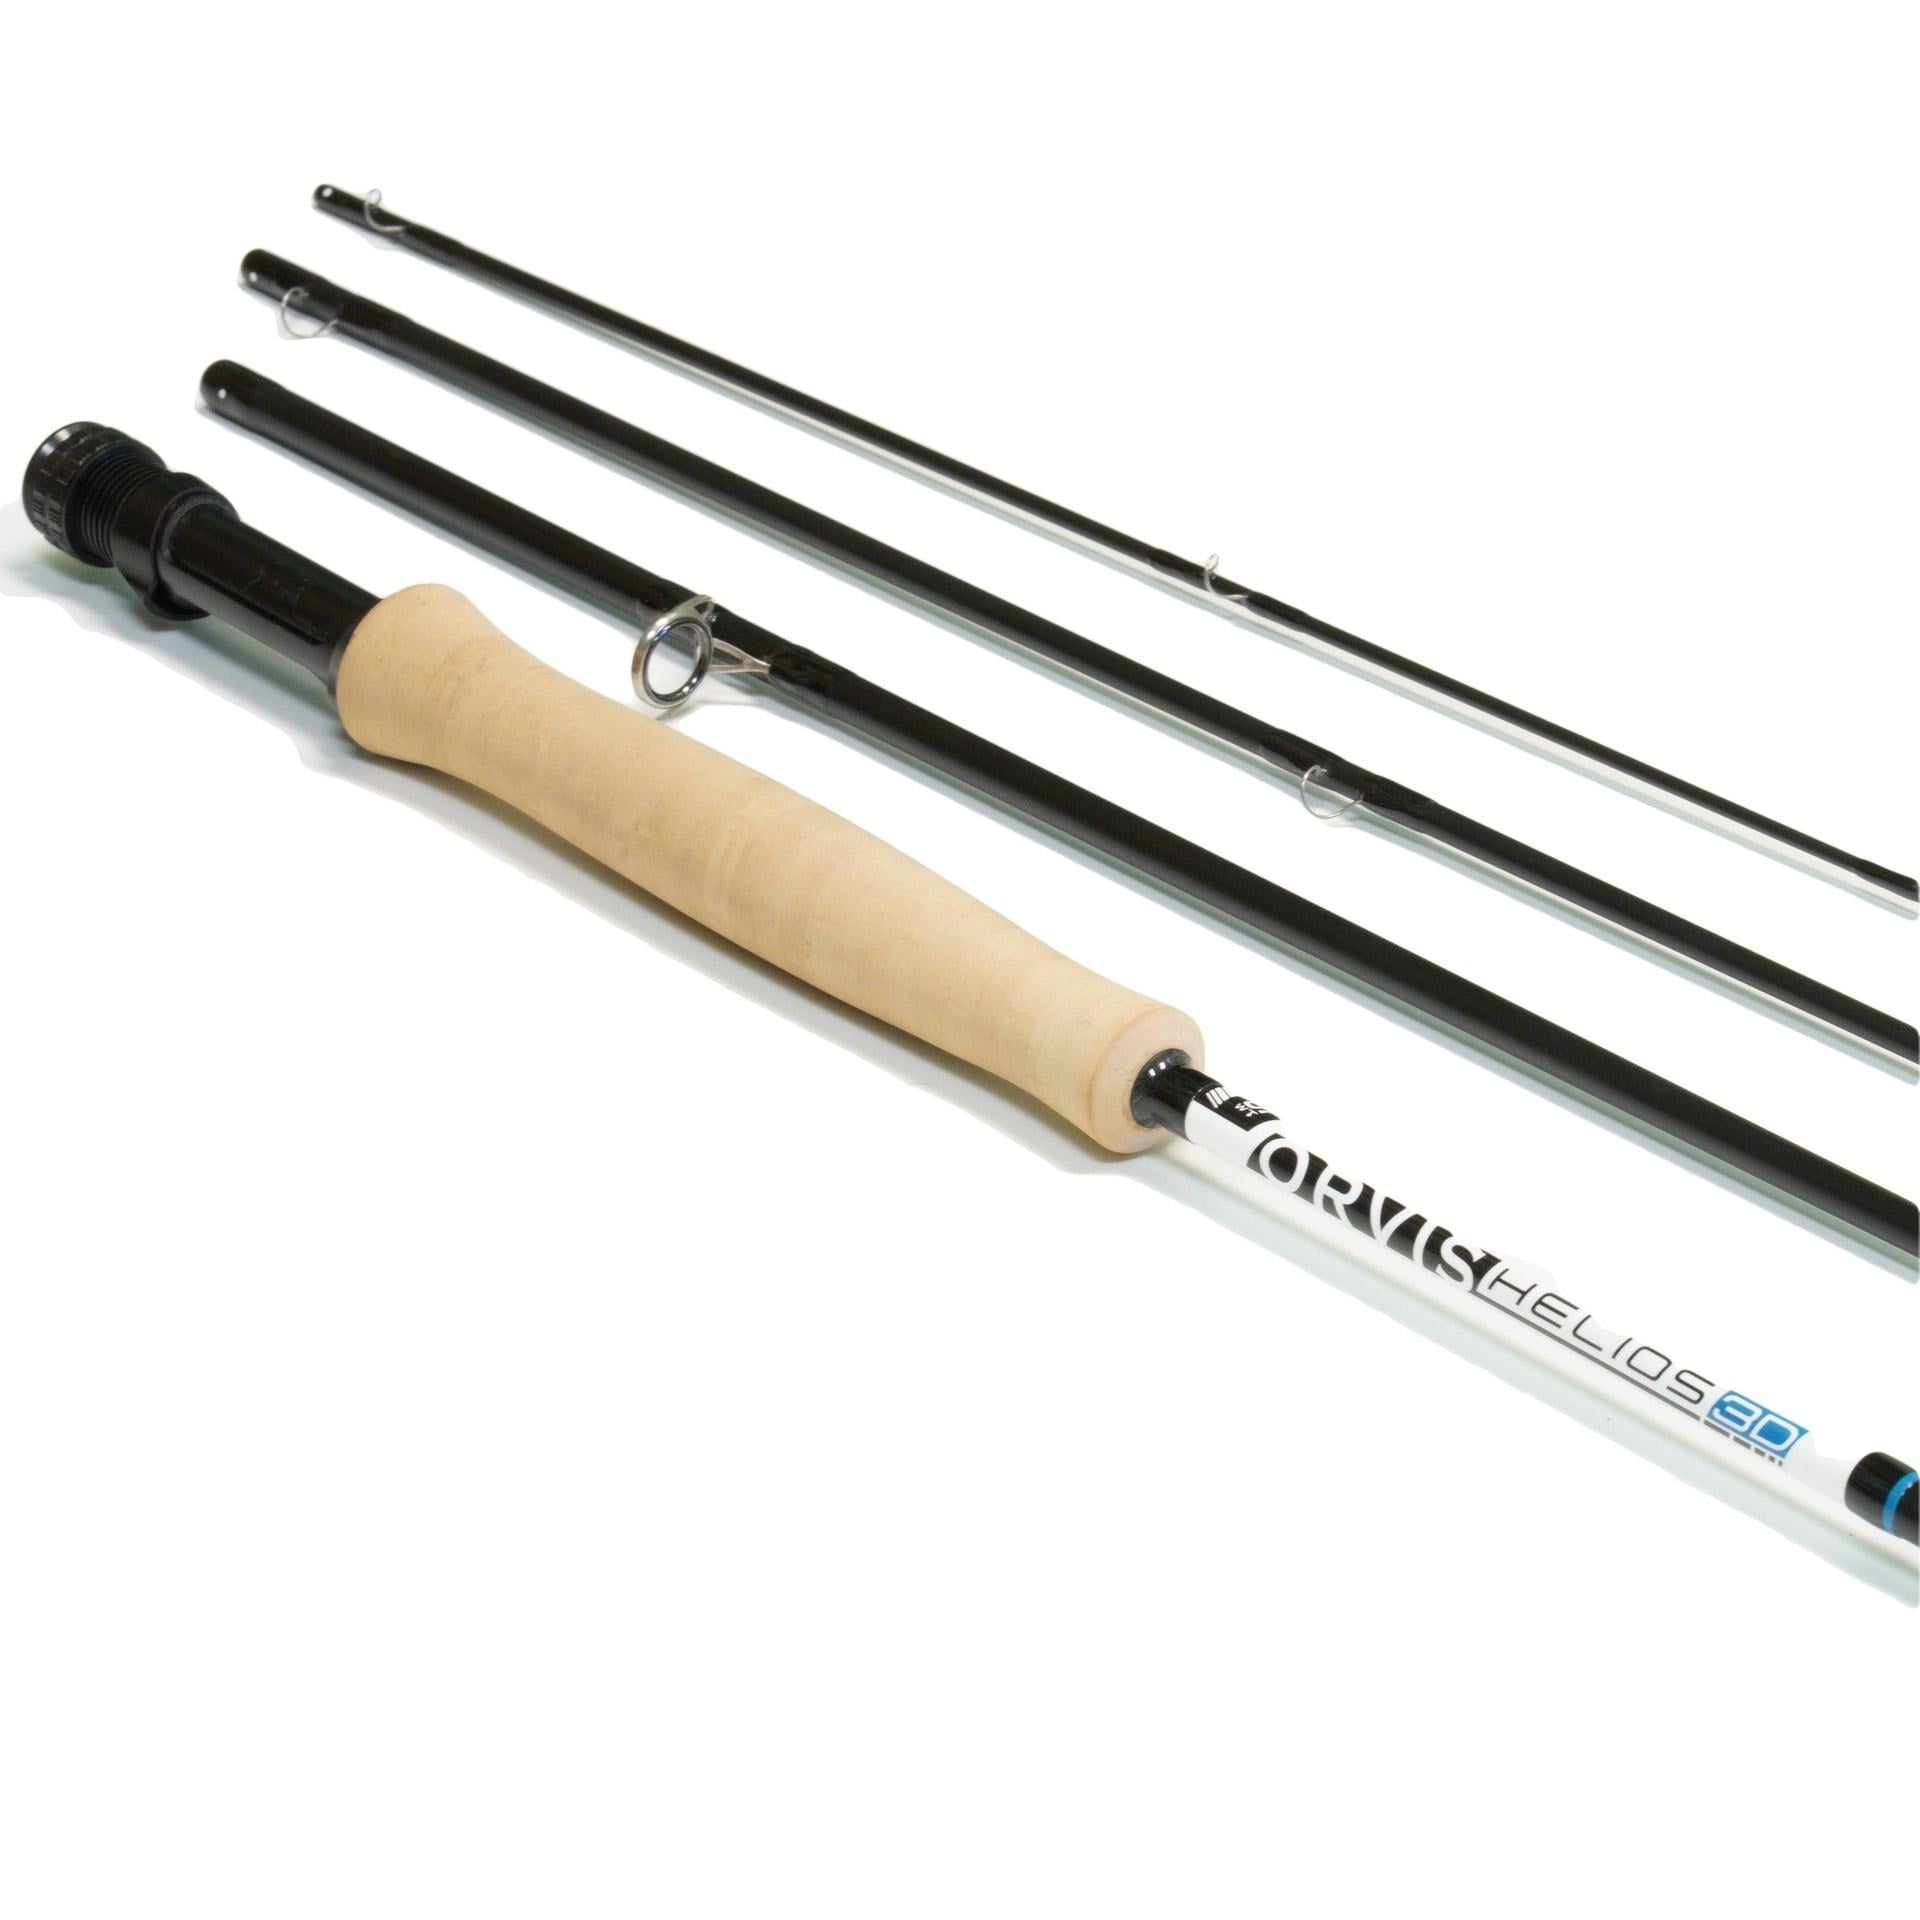 Orvis Orvis Helios 3D Fly Rod Fly Rods